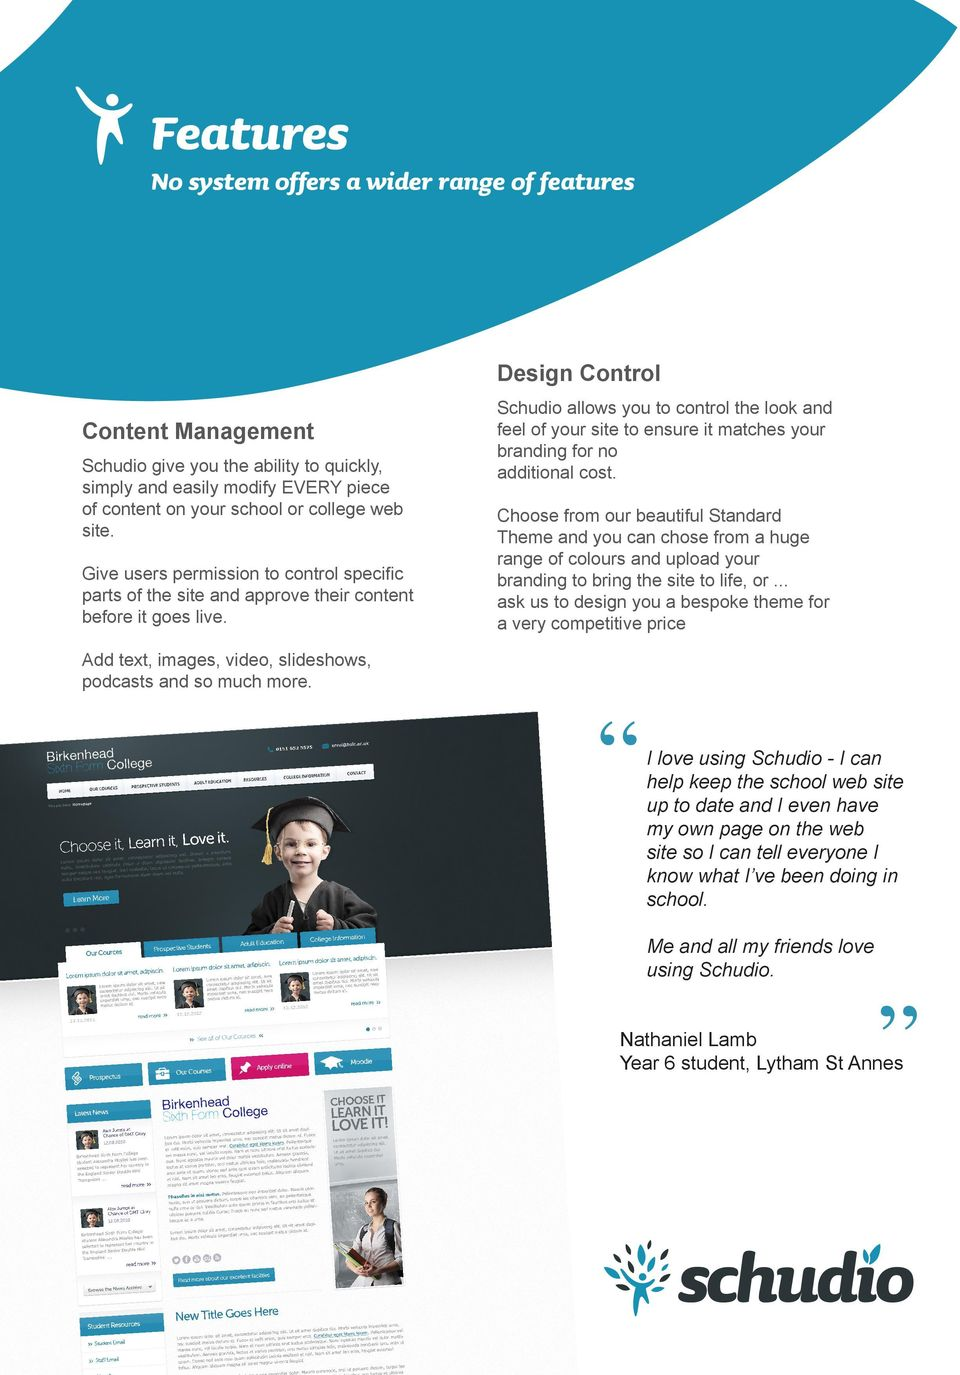 Design Control Schudio allows you to control the look and feel of your site to ensure it matches your branding for no additional cost.